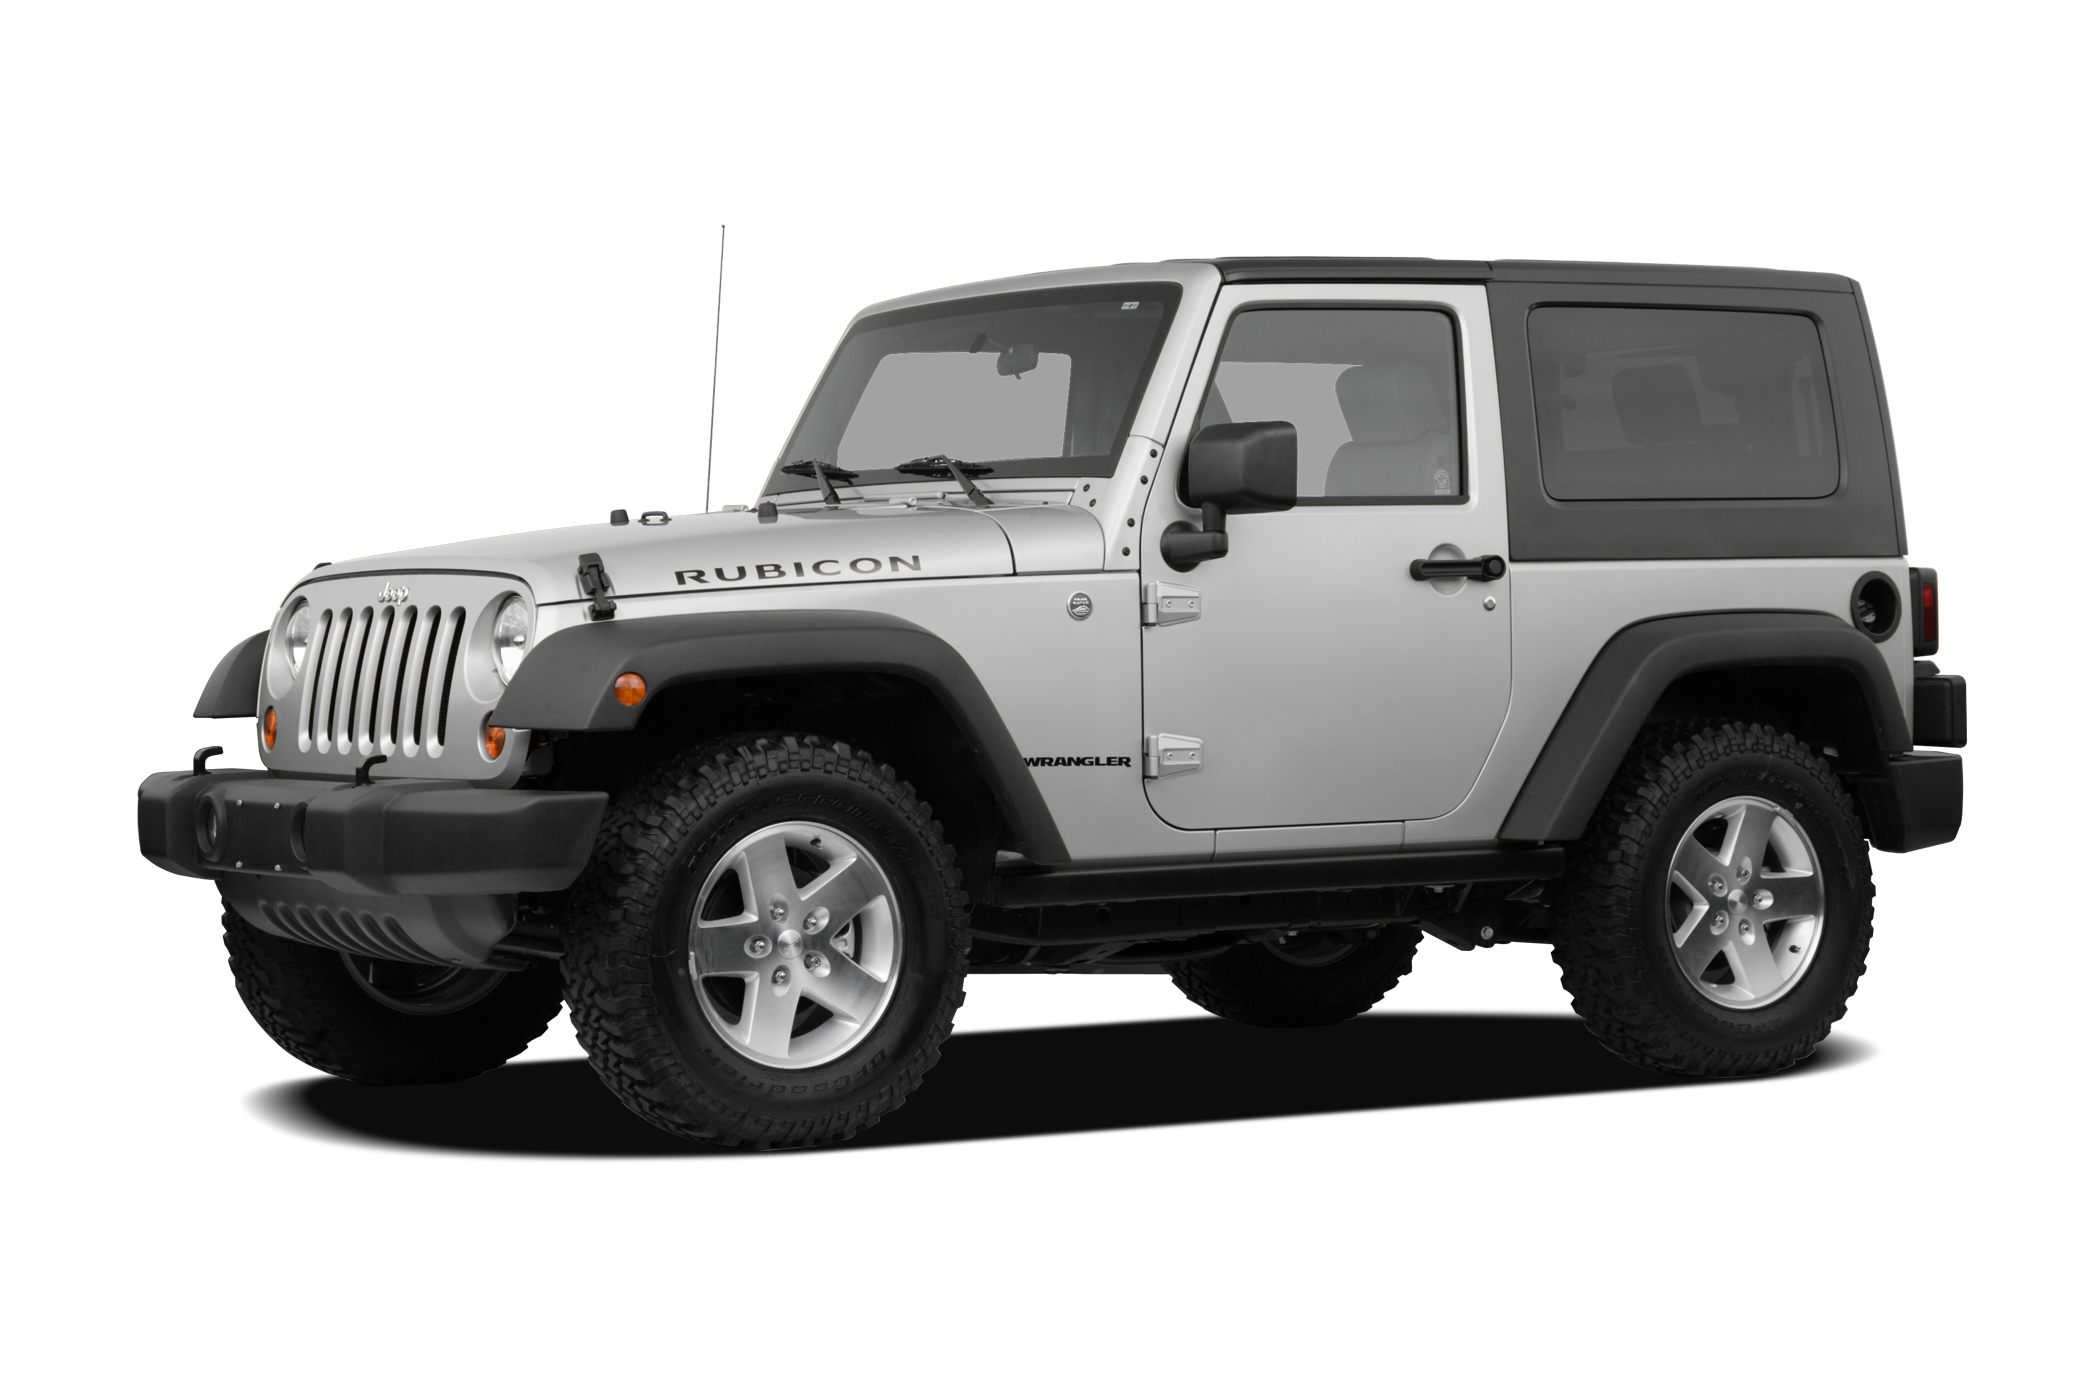 2010 Jeep Wrangler Rubicon SUV for sale in Pittsburgh for $23,550 with 55,360 miles